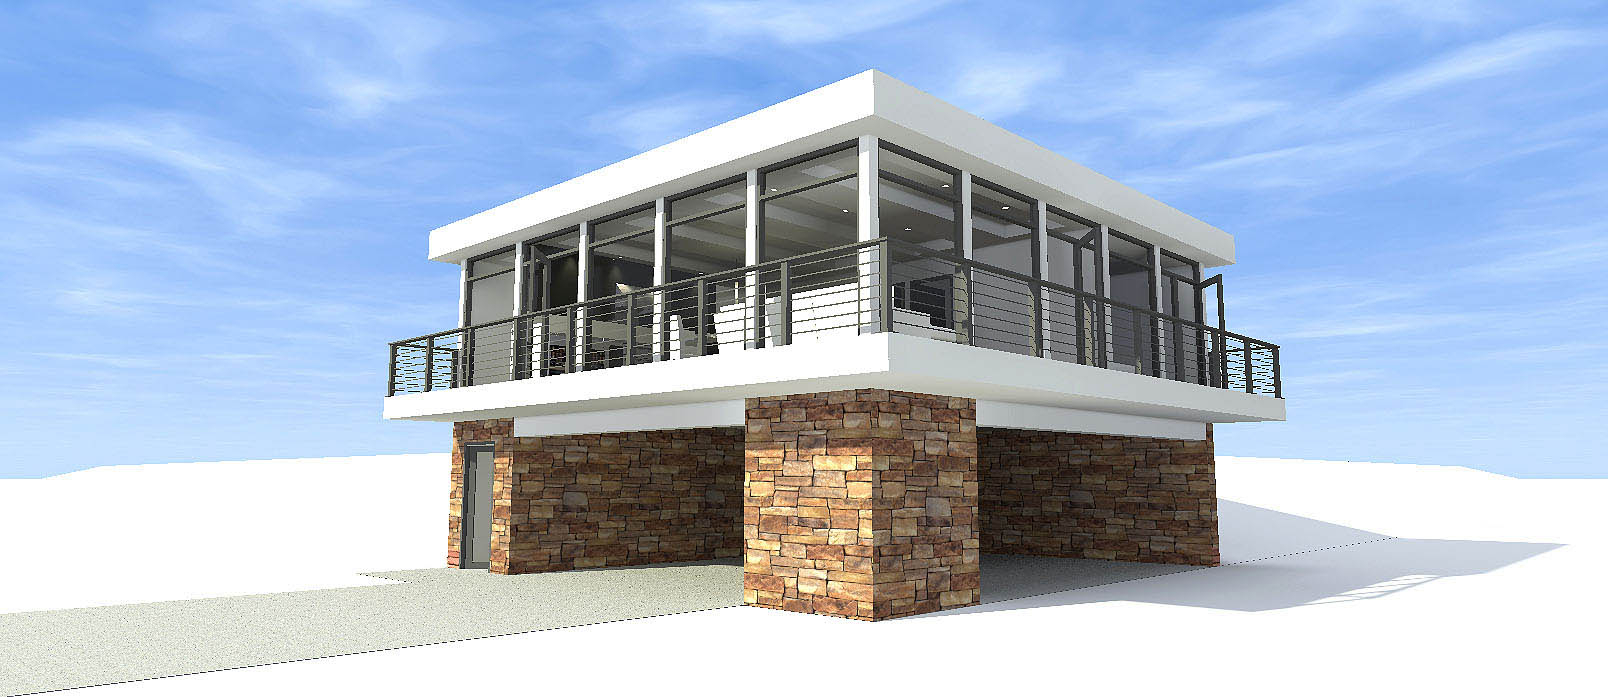 Concrete Block Icf Designmodernhouse Plans Home Design 116 1082 within 2 Bedroom Modern House Plans